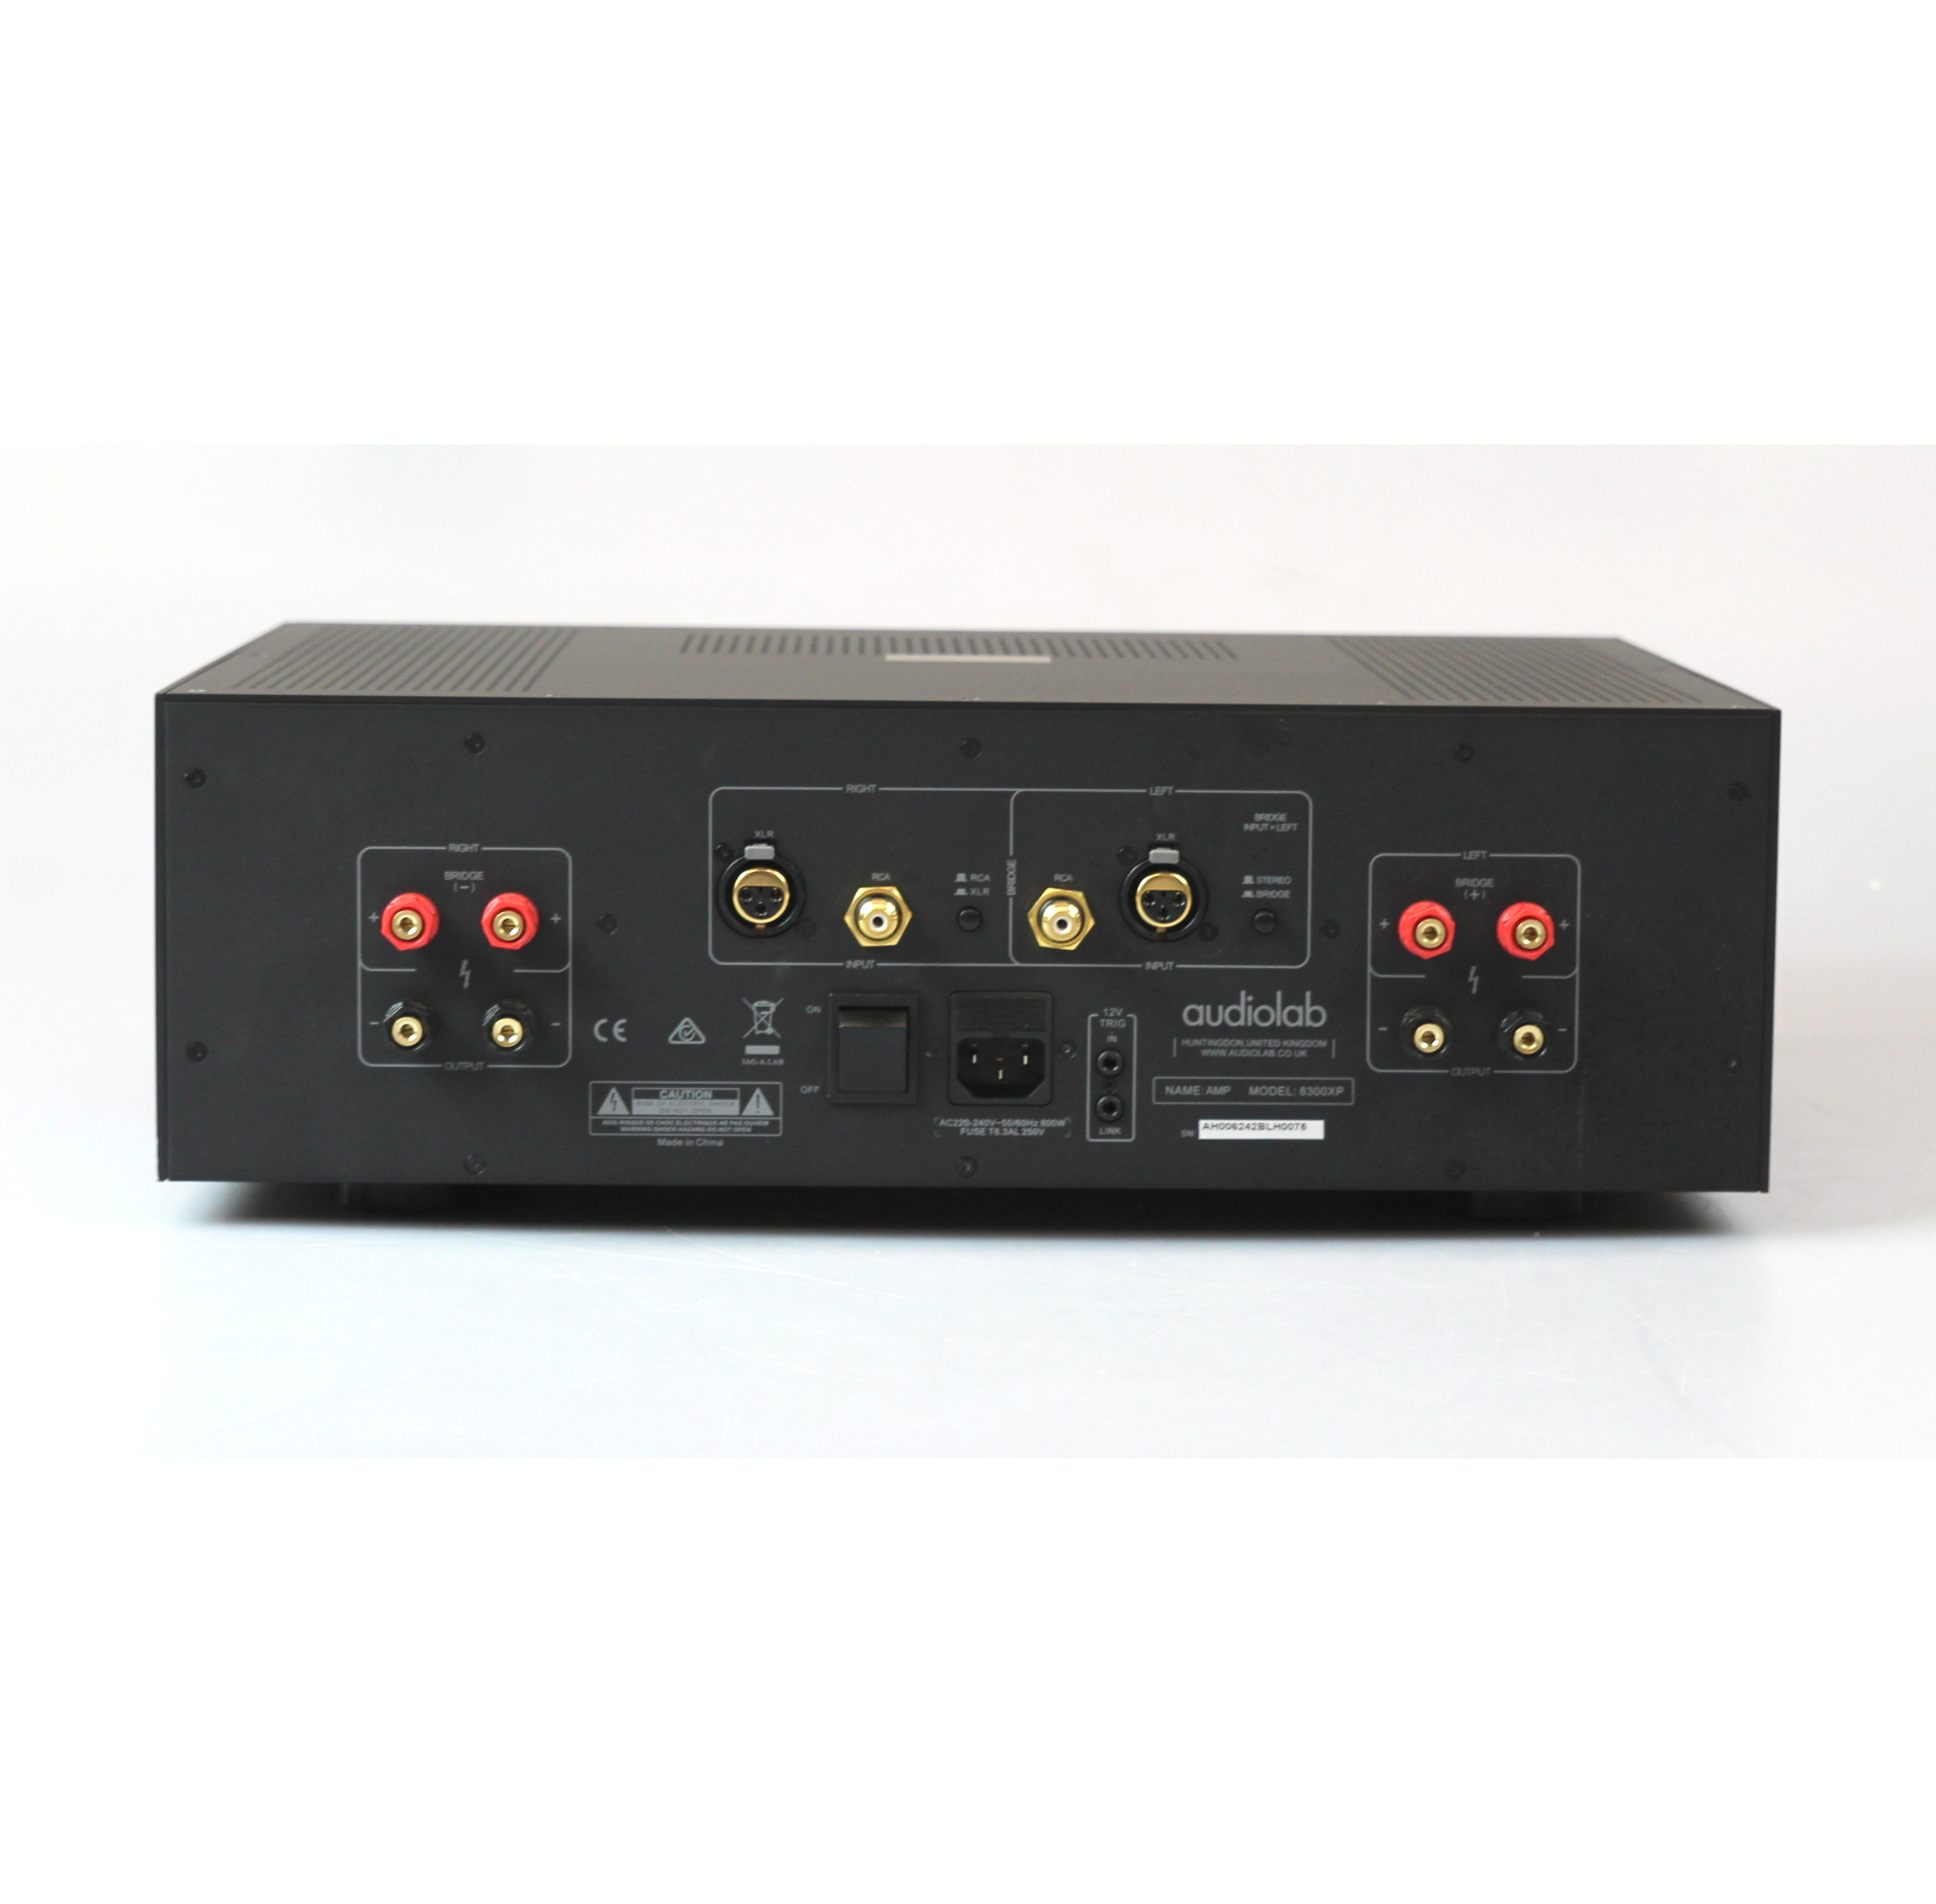 Details about Audiolab 8300XP Stereo Power Amplifier - Home 2 Chennel Audio  Amp